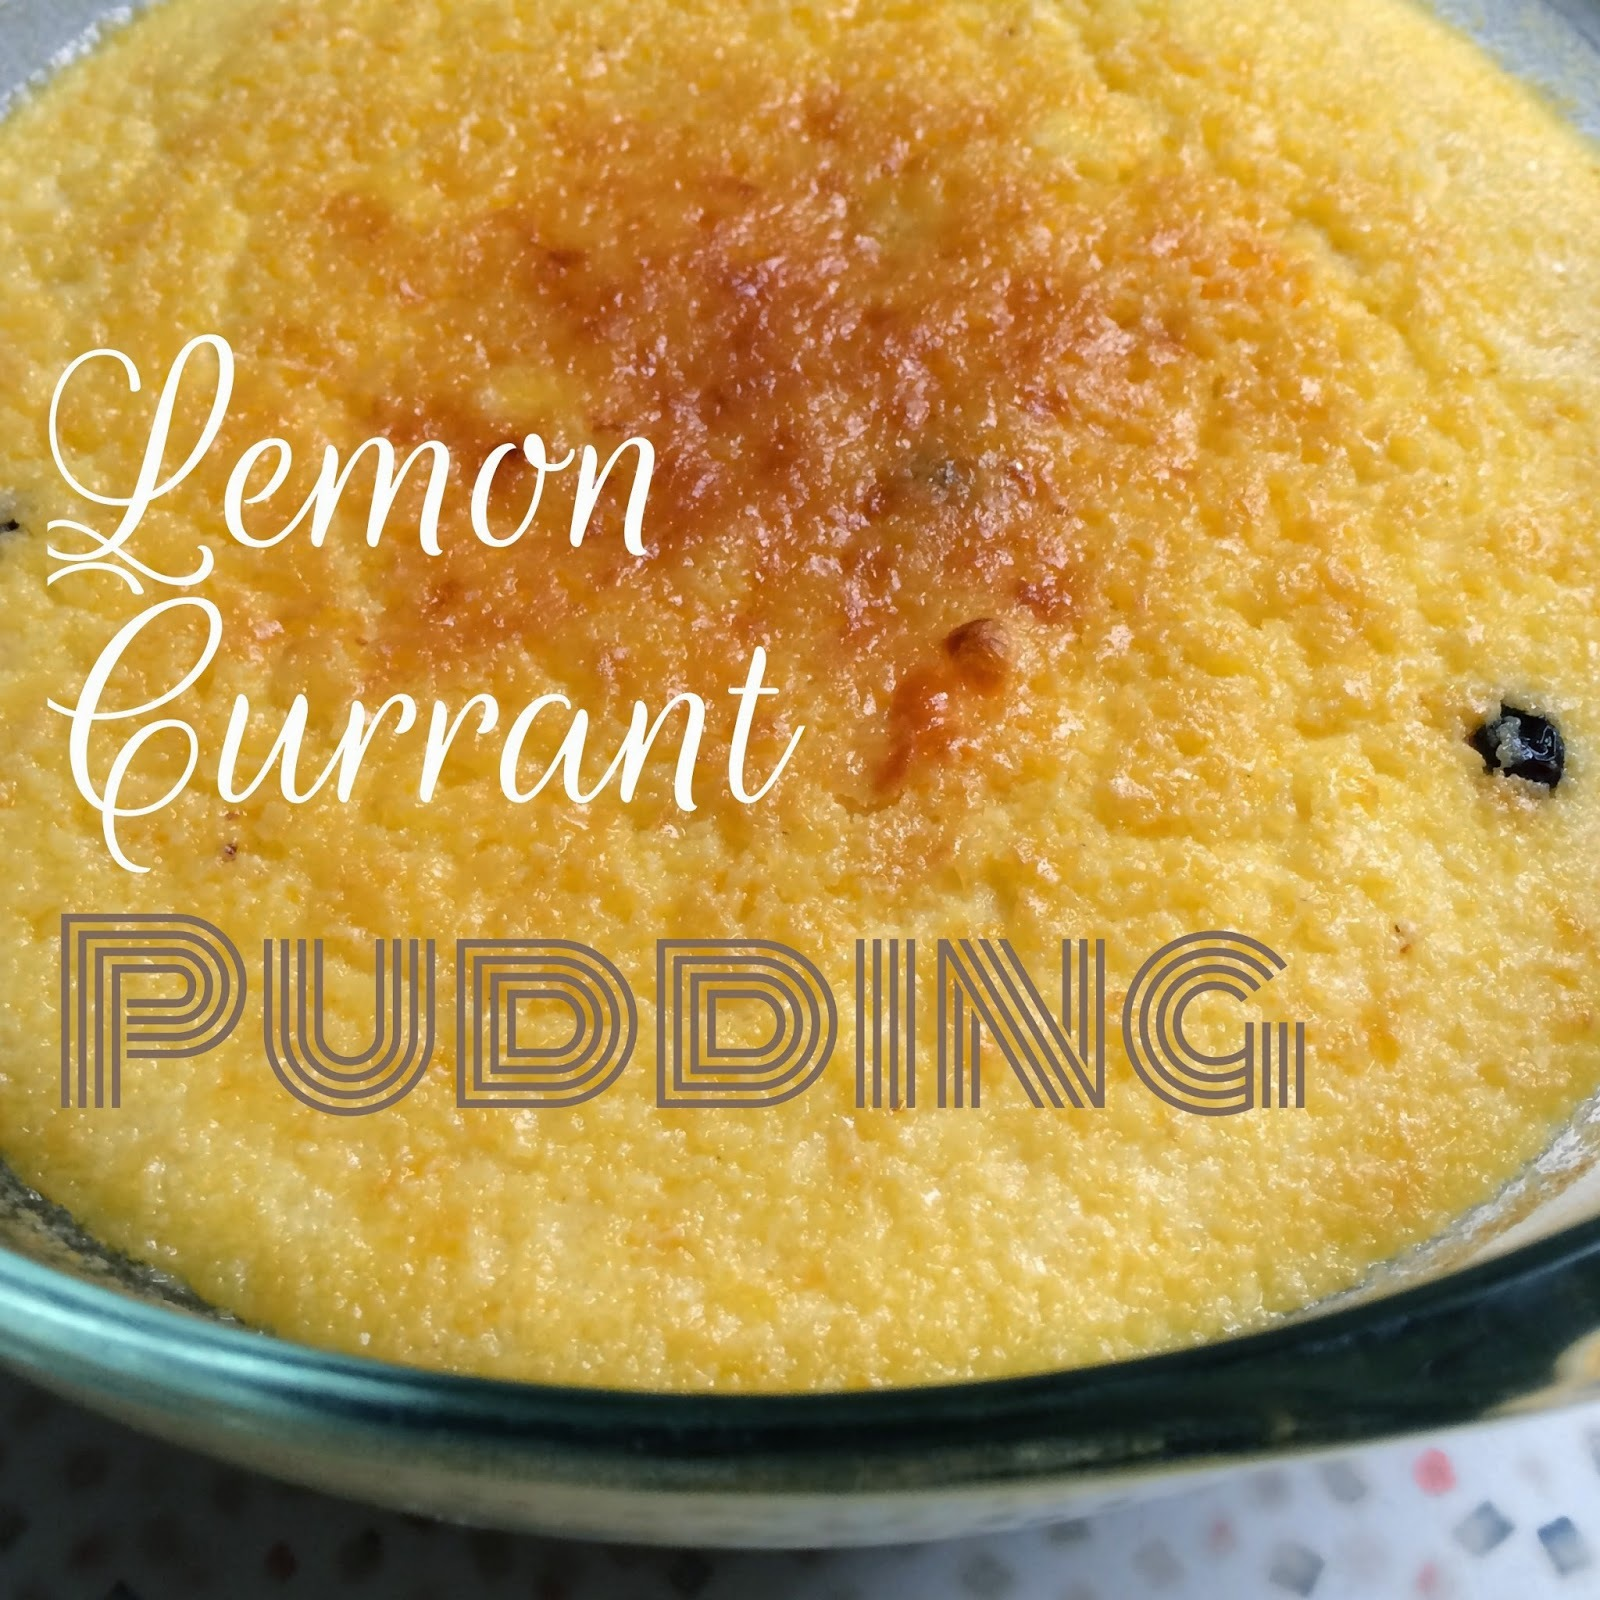 Hot Desserts For Cold Days - Lemon Currant Pudding